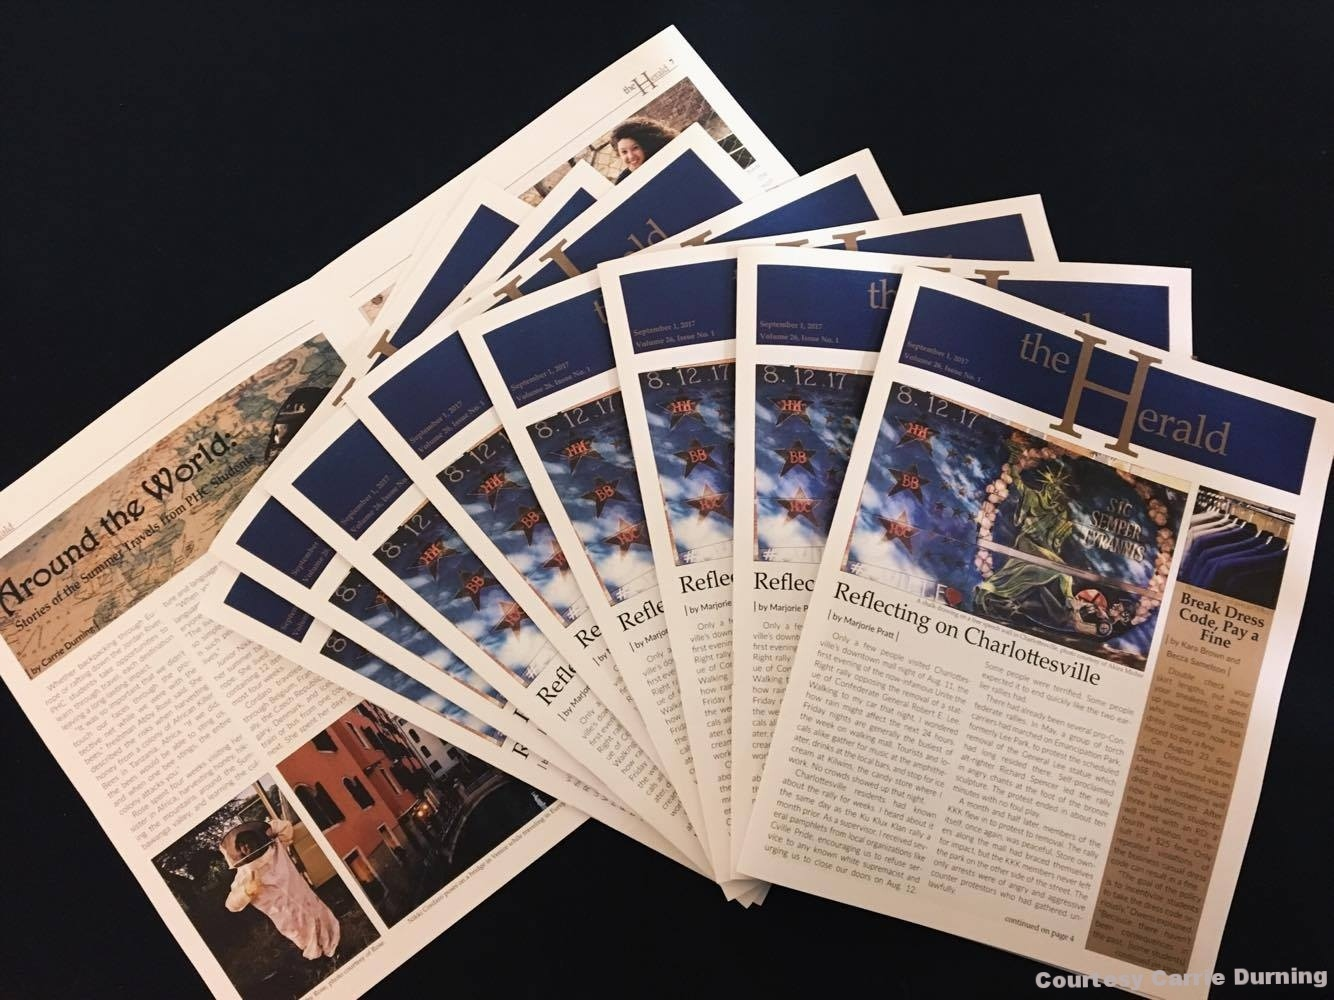 PHC student publication The Herald